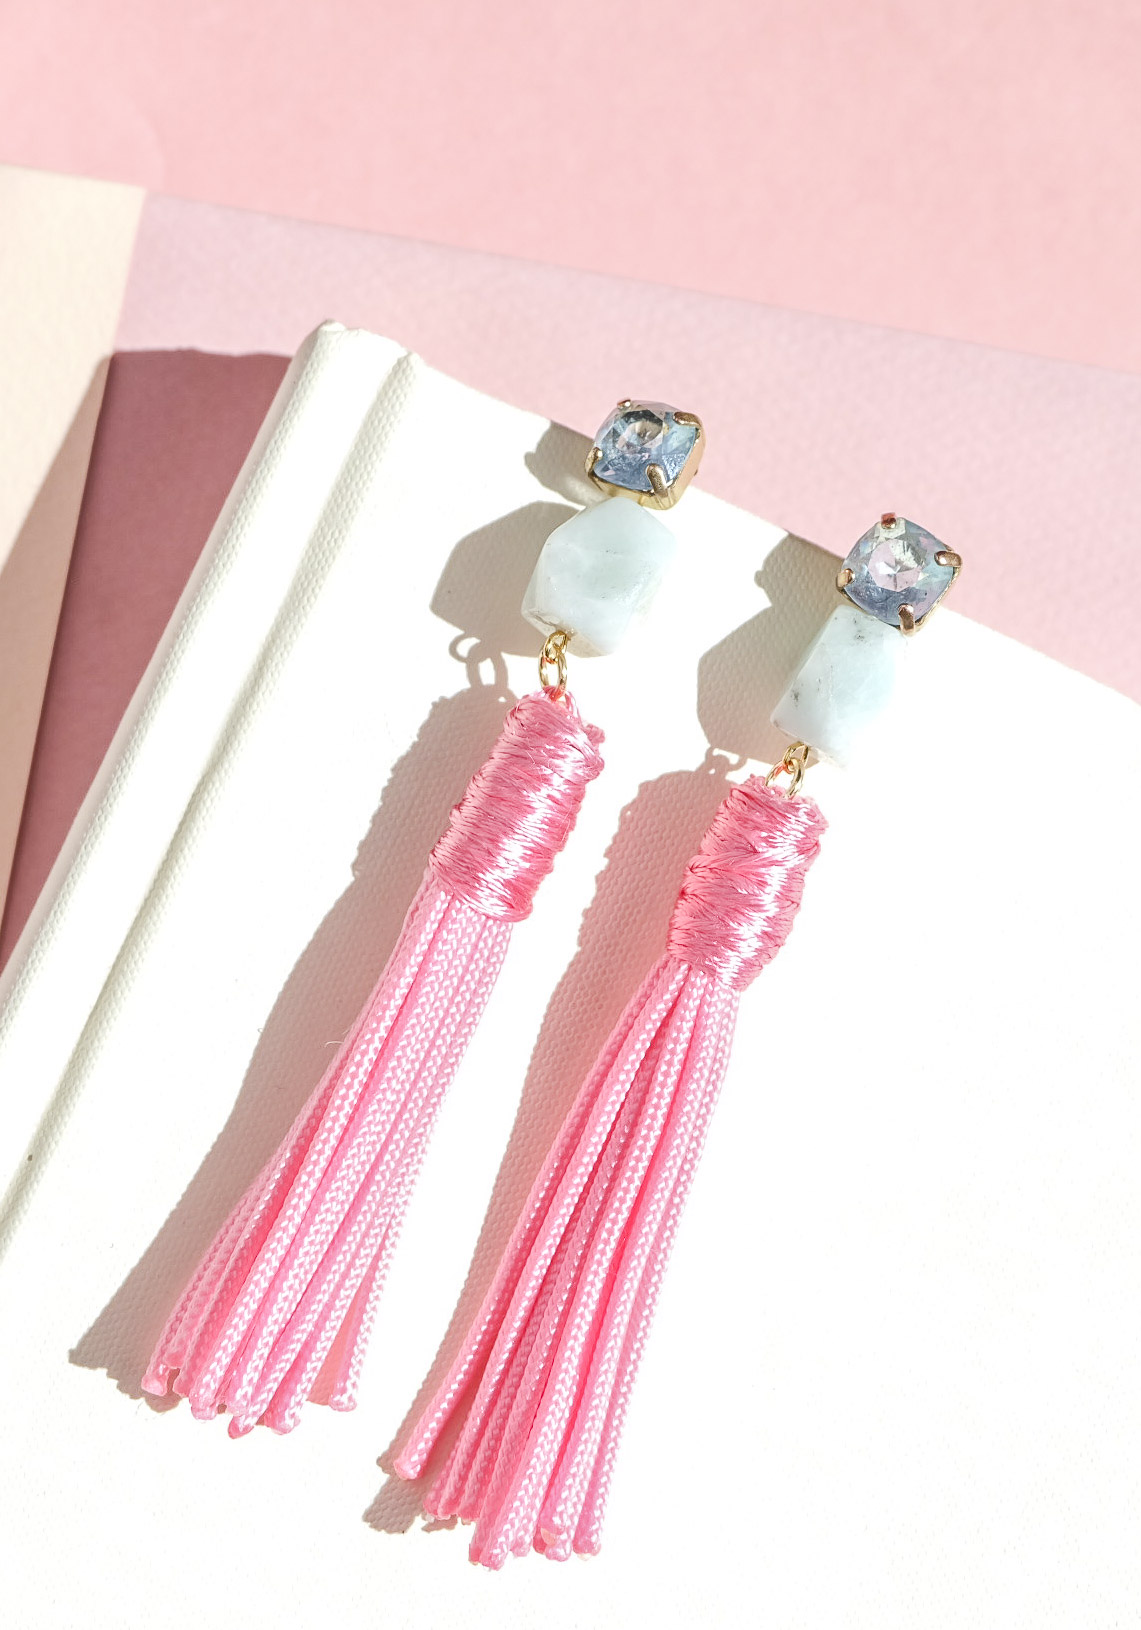 DIY tassel statement earrings similar to Baublebar Piñata earrings.  Pink tassel earrings for fall on www.me-and-mrjones.com